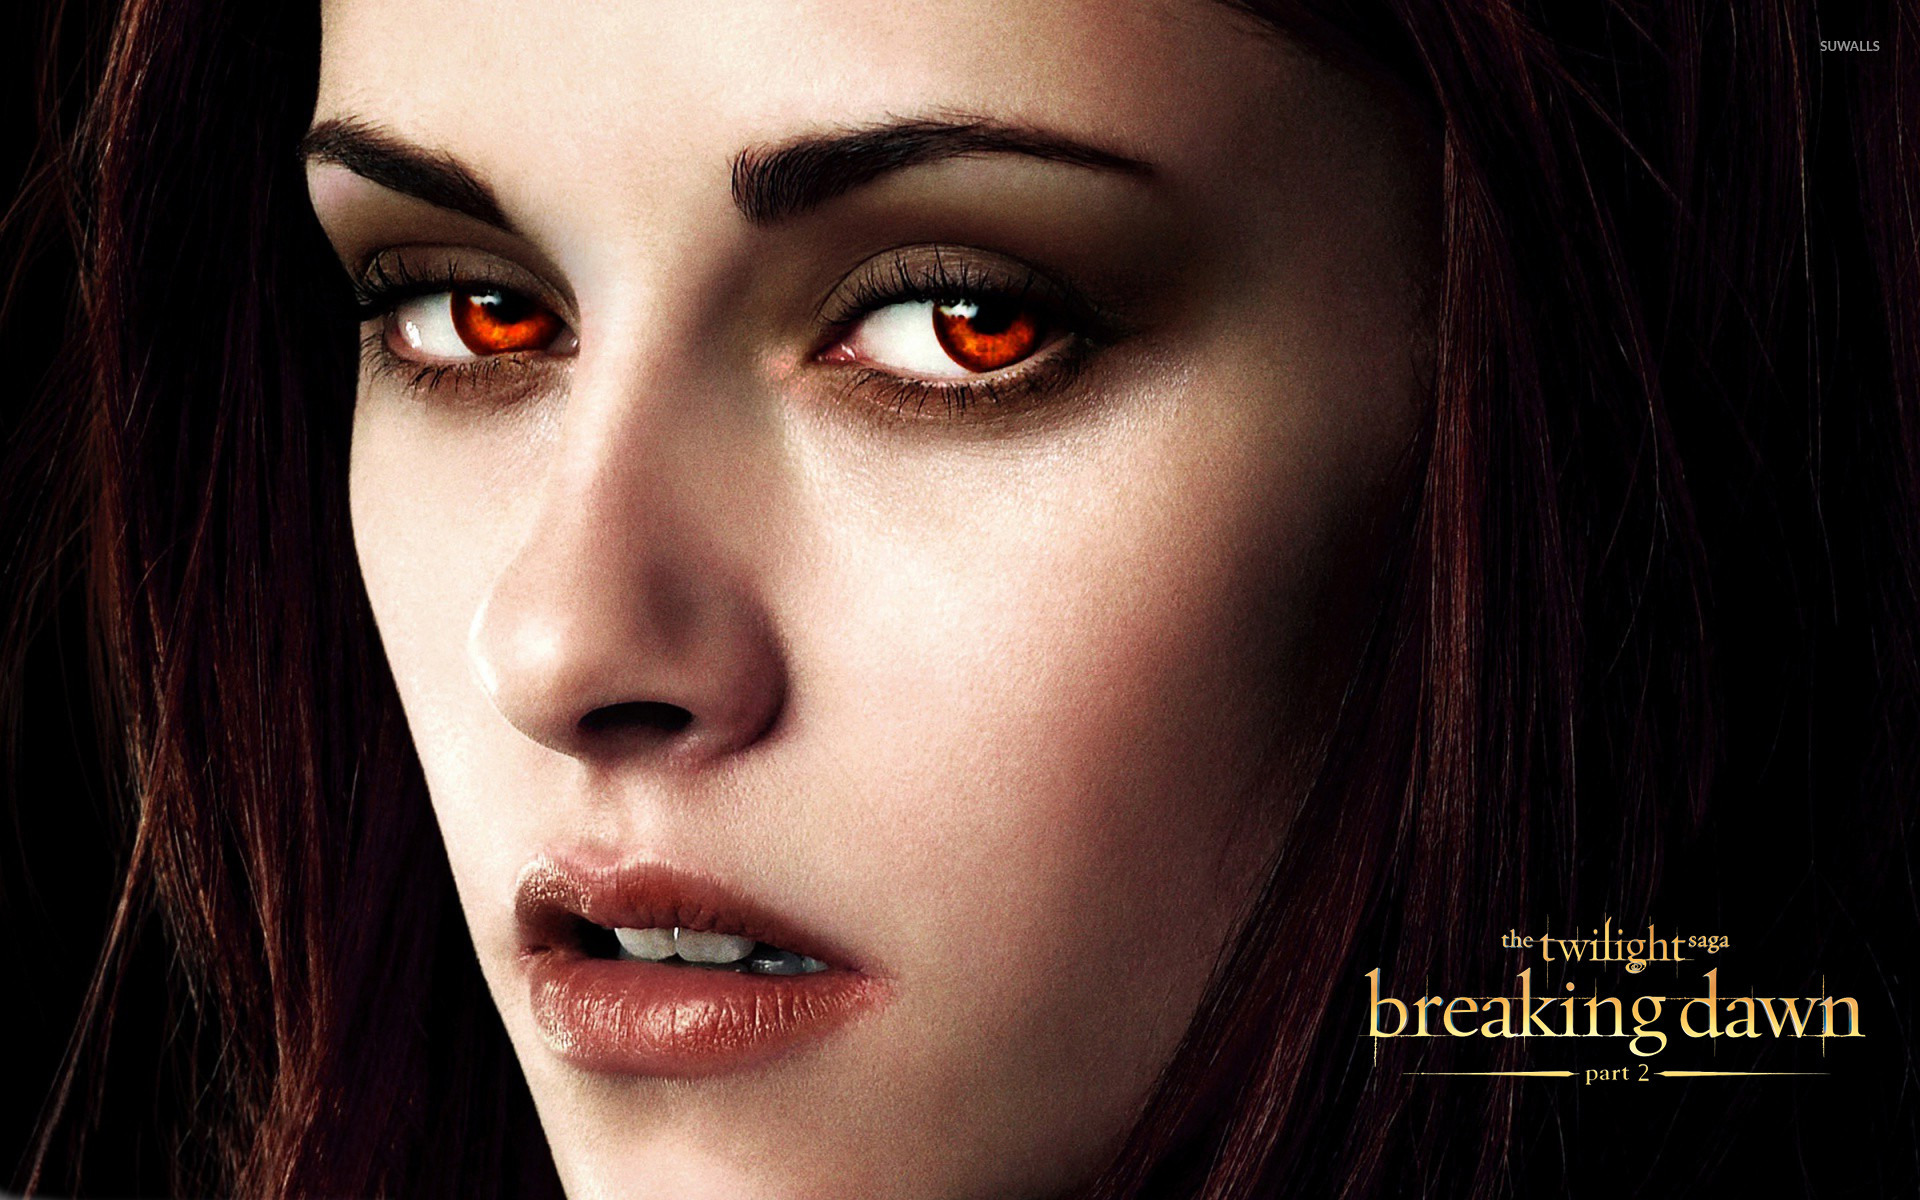 The Twilight Saga Breaking Dawn Part Wallpapers and Background